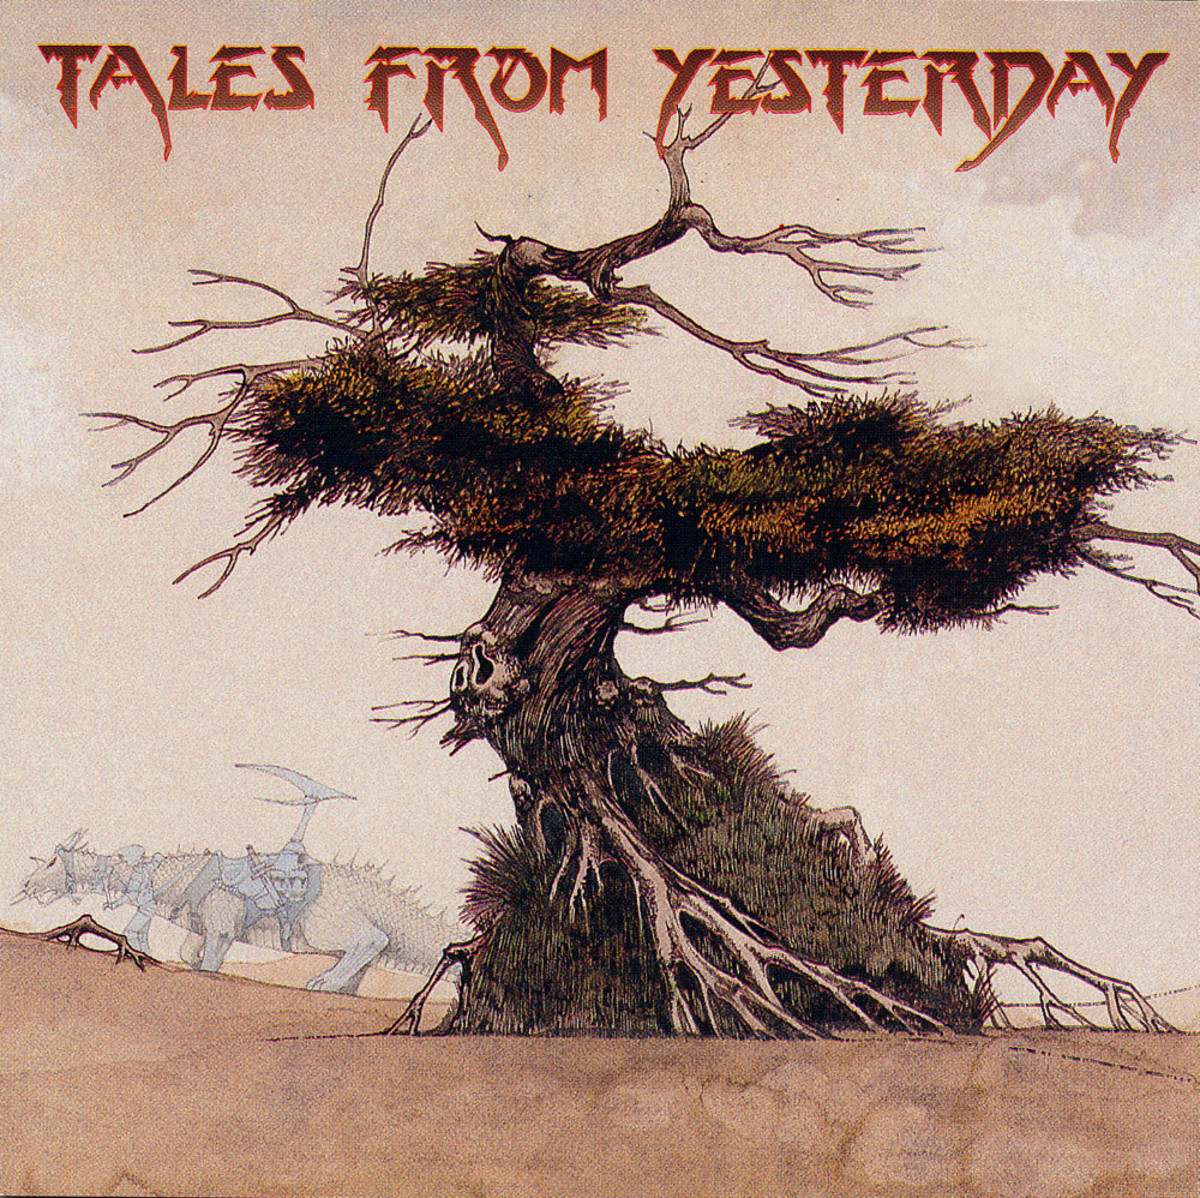 "Various Artist ""Tales From Yesterday"" Magna Carta MA-9003-2 Compact Disc US Pressing (1995) CD Album Cover Art by Roger Dean"